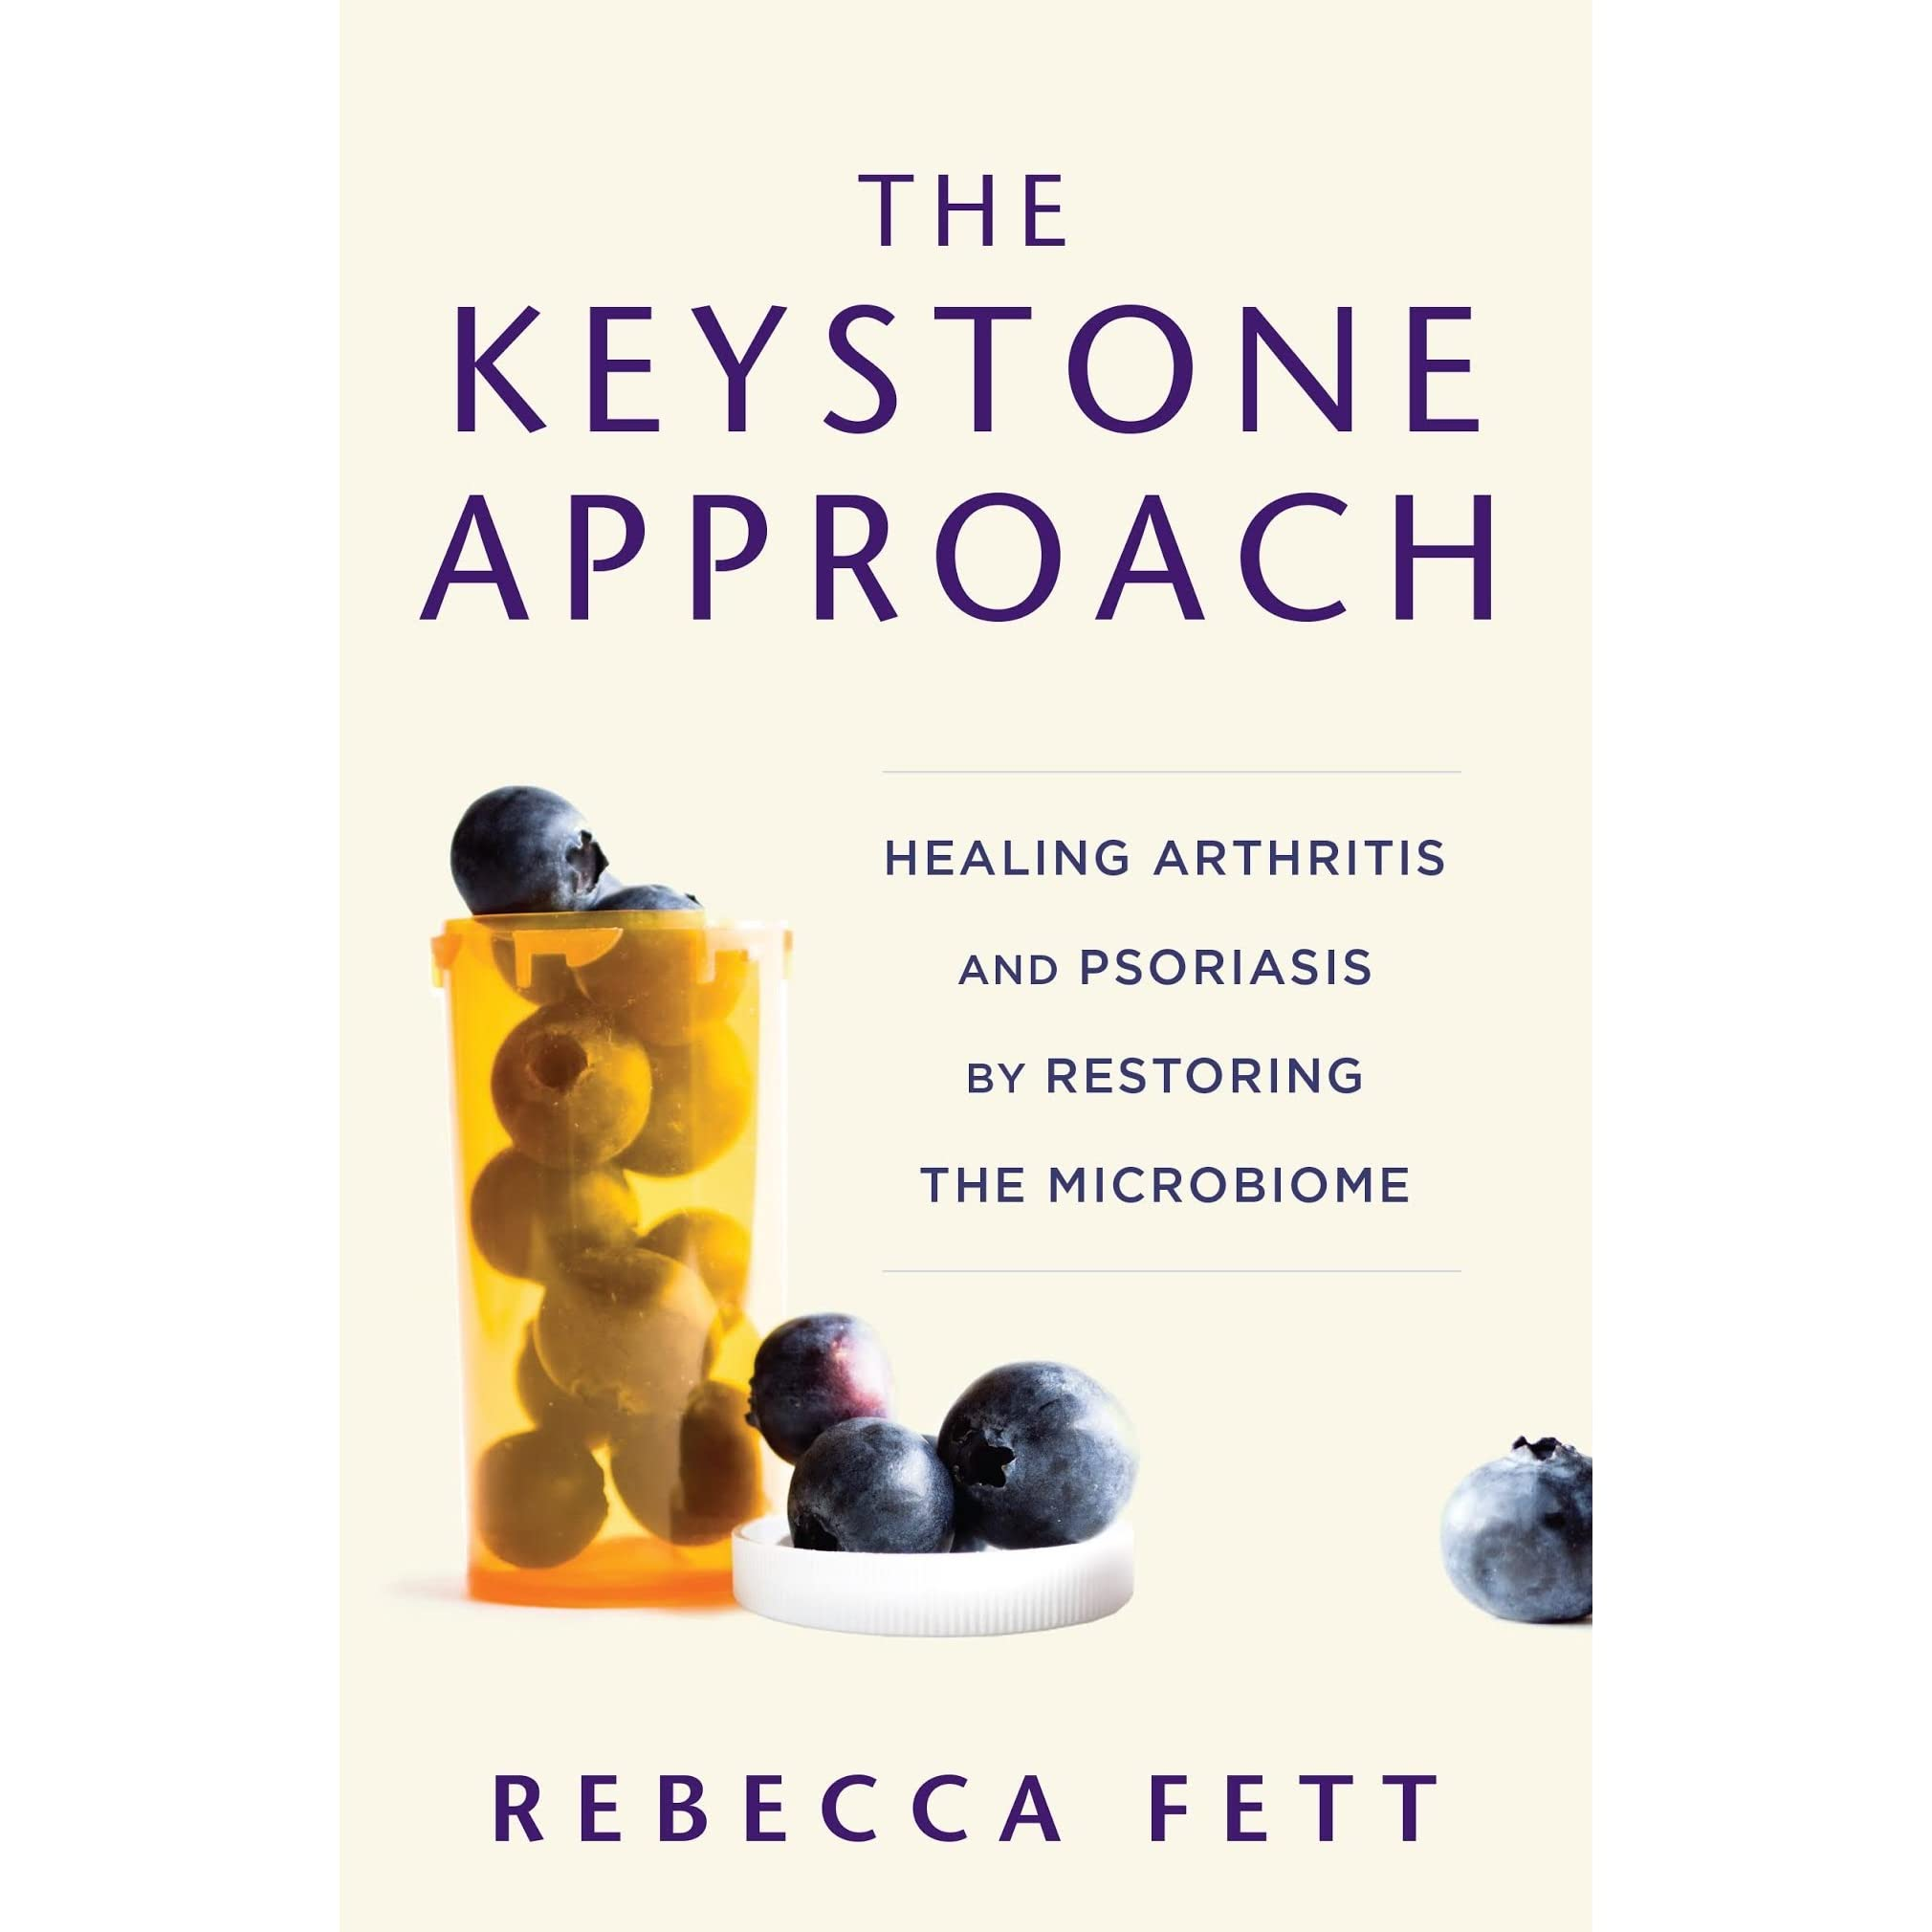 2020 Top Best Microbiome Audiobooks The Keystone Approach: Healing Arthritis and Psoriasis by